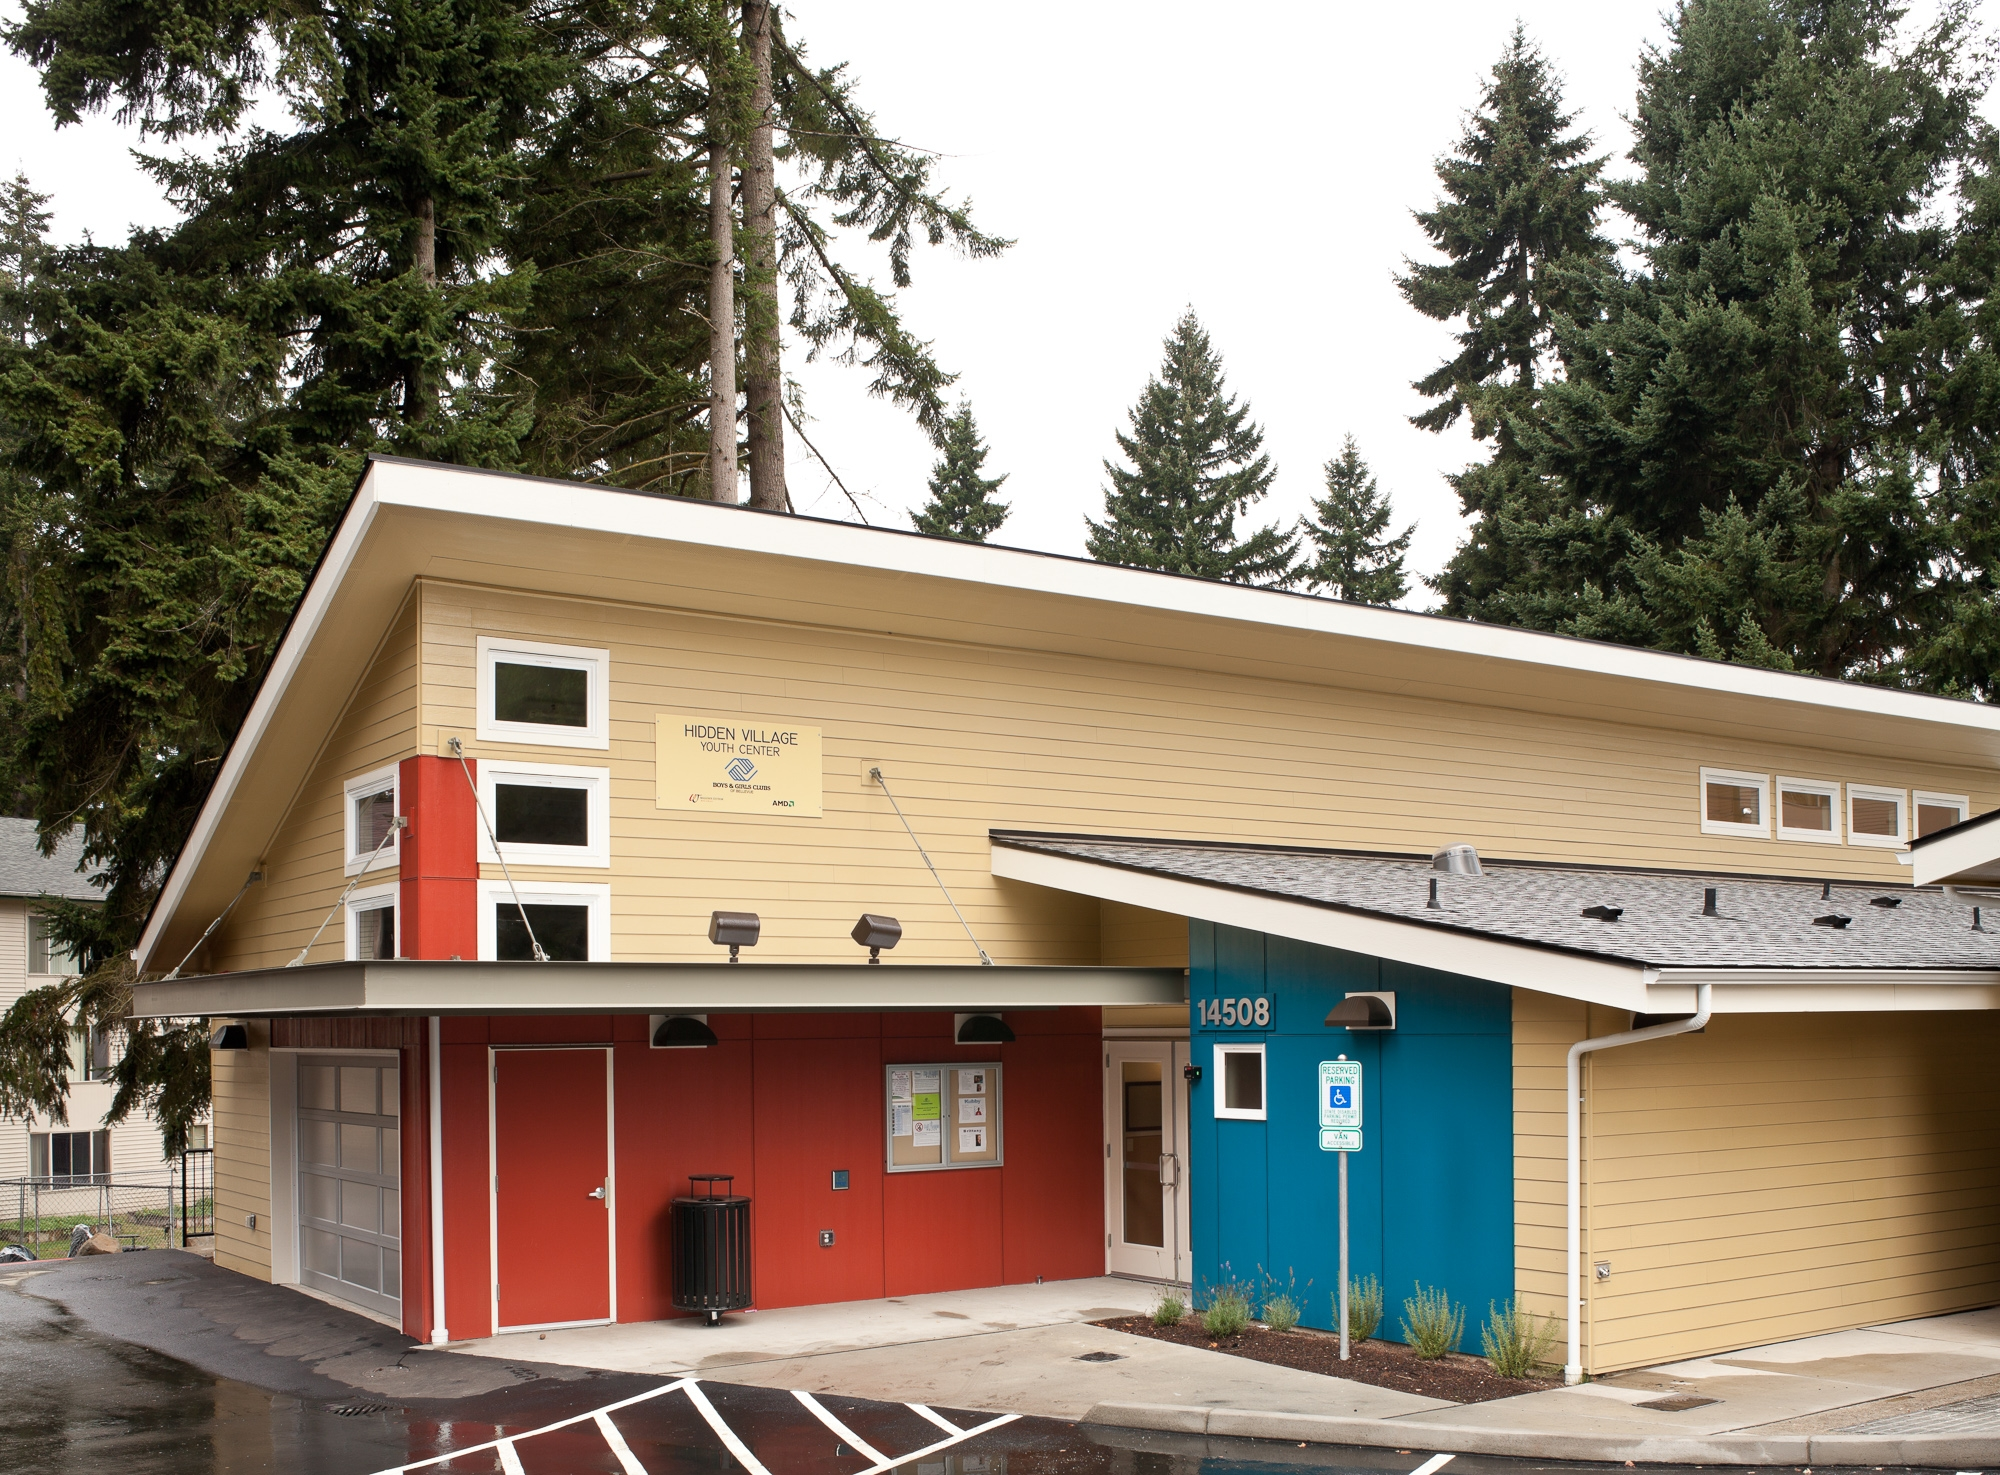 king county housing authority > news & publications > news